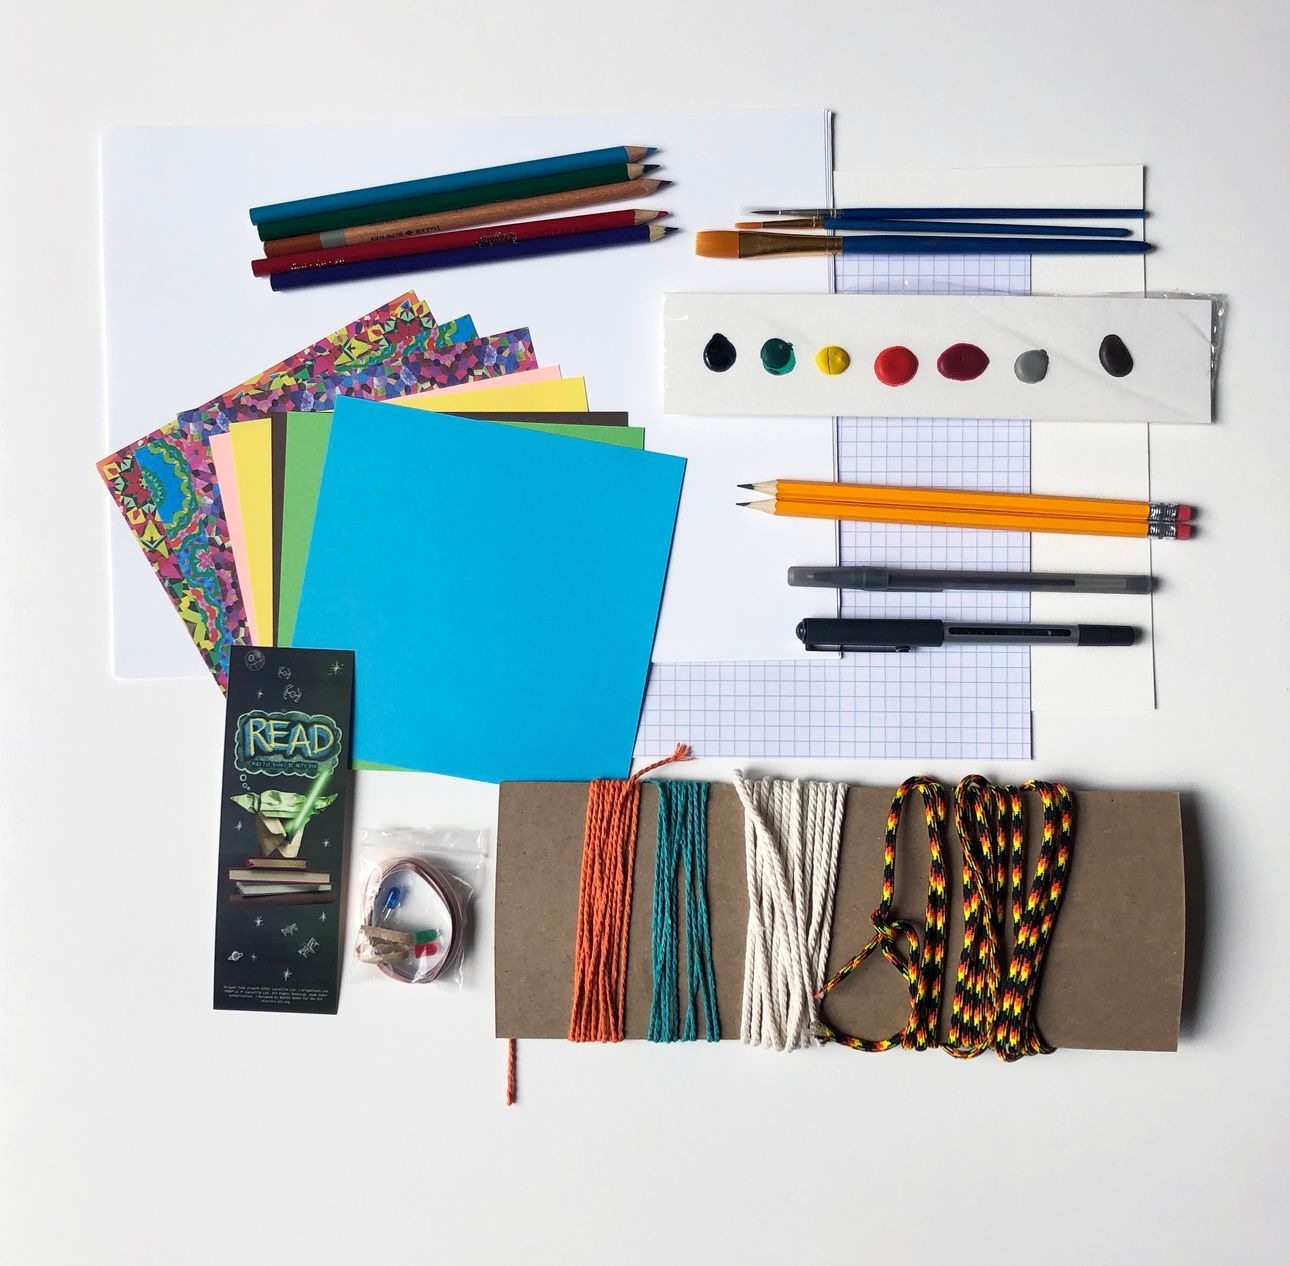 Makerspace Maker Kit Example of Contents